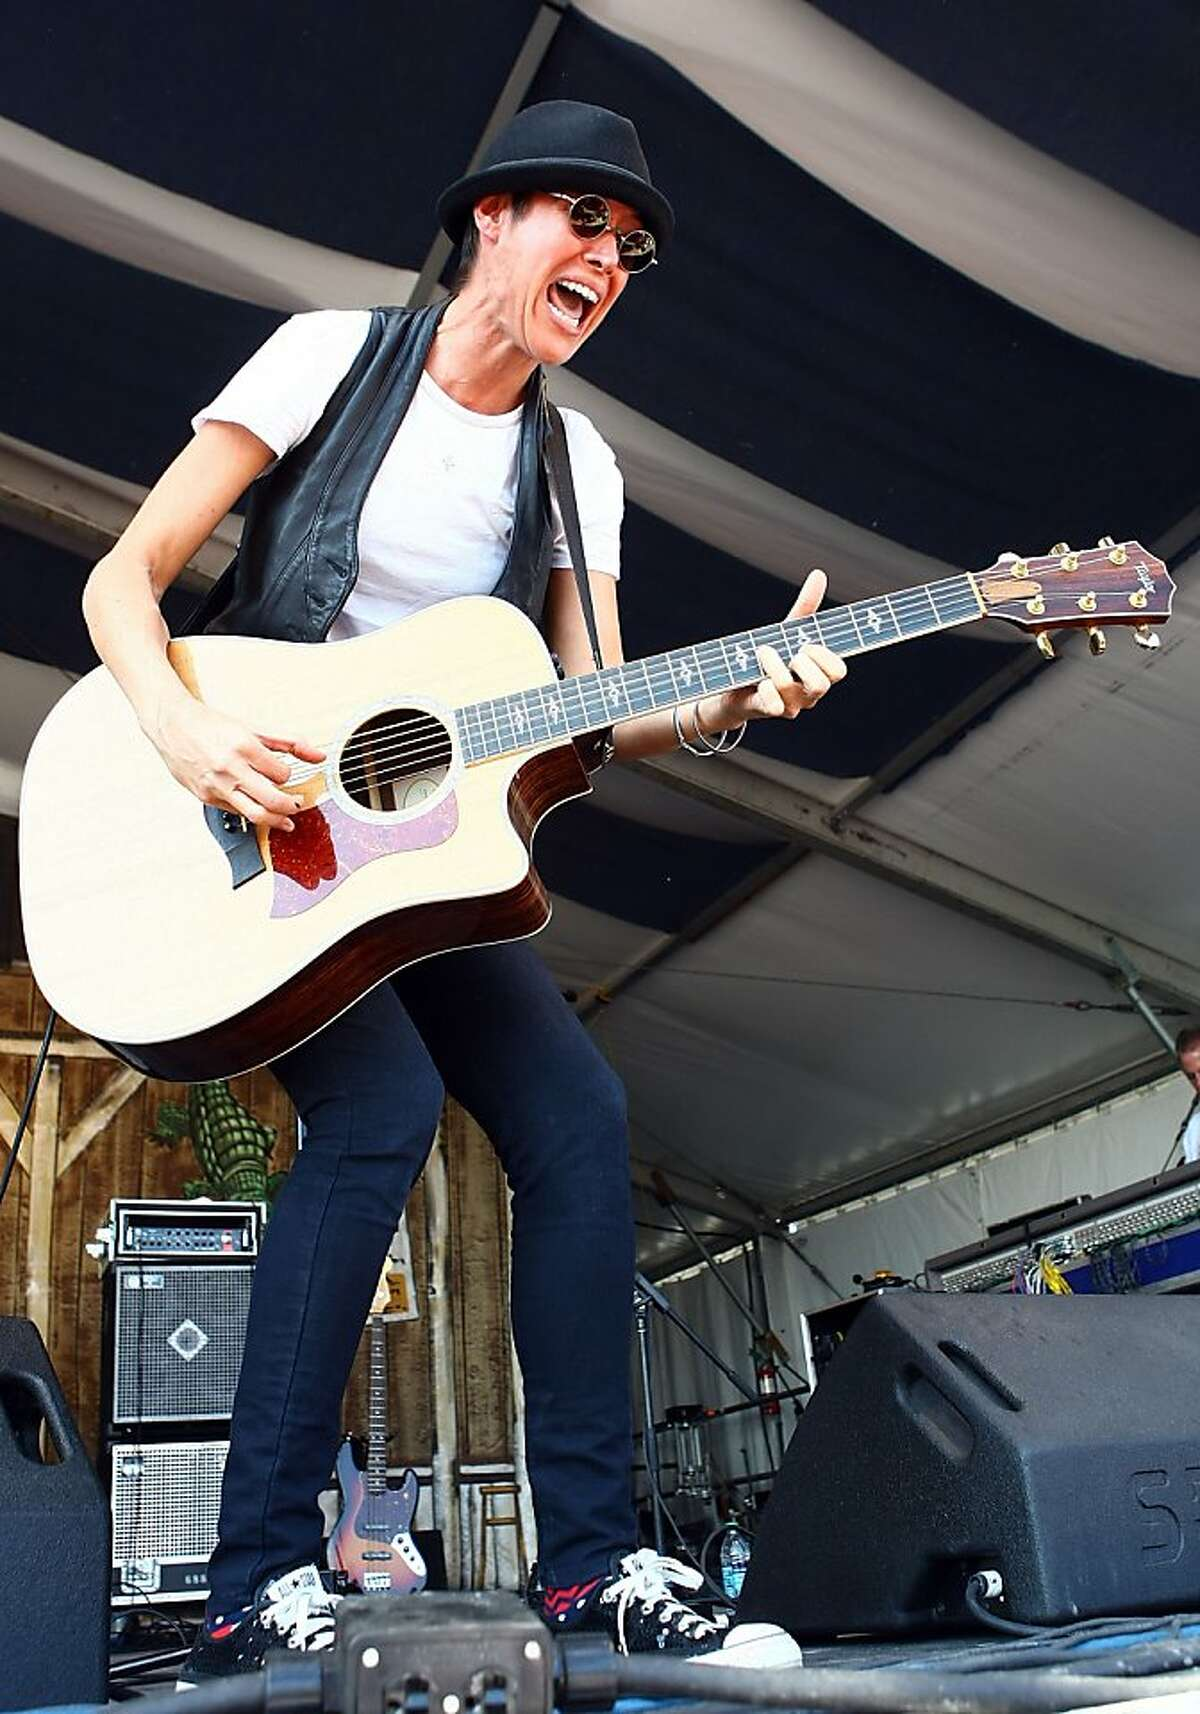 Singer / Songwriter Michelle Shocked performs during day 4 of the 2011 New Orleans Jazz & Heritage Festival at the Fair Grounds Race Course on May 5, 2011 in New Orleans, Louisiana.